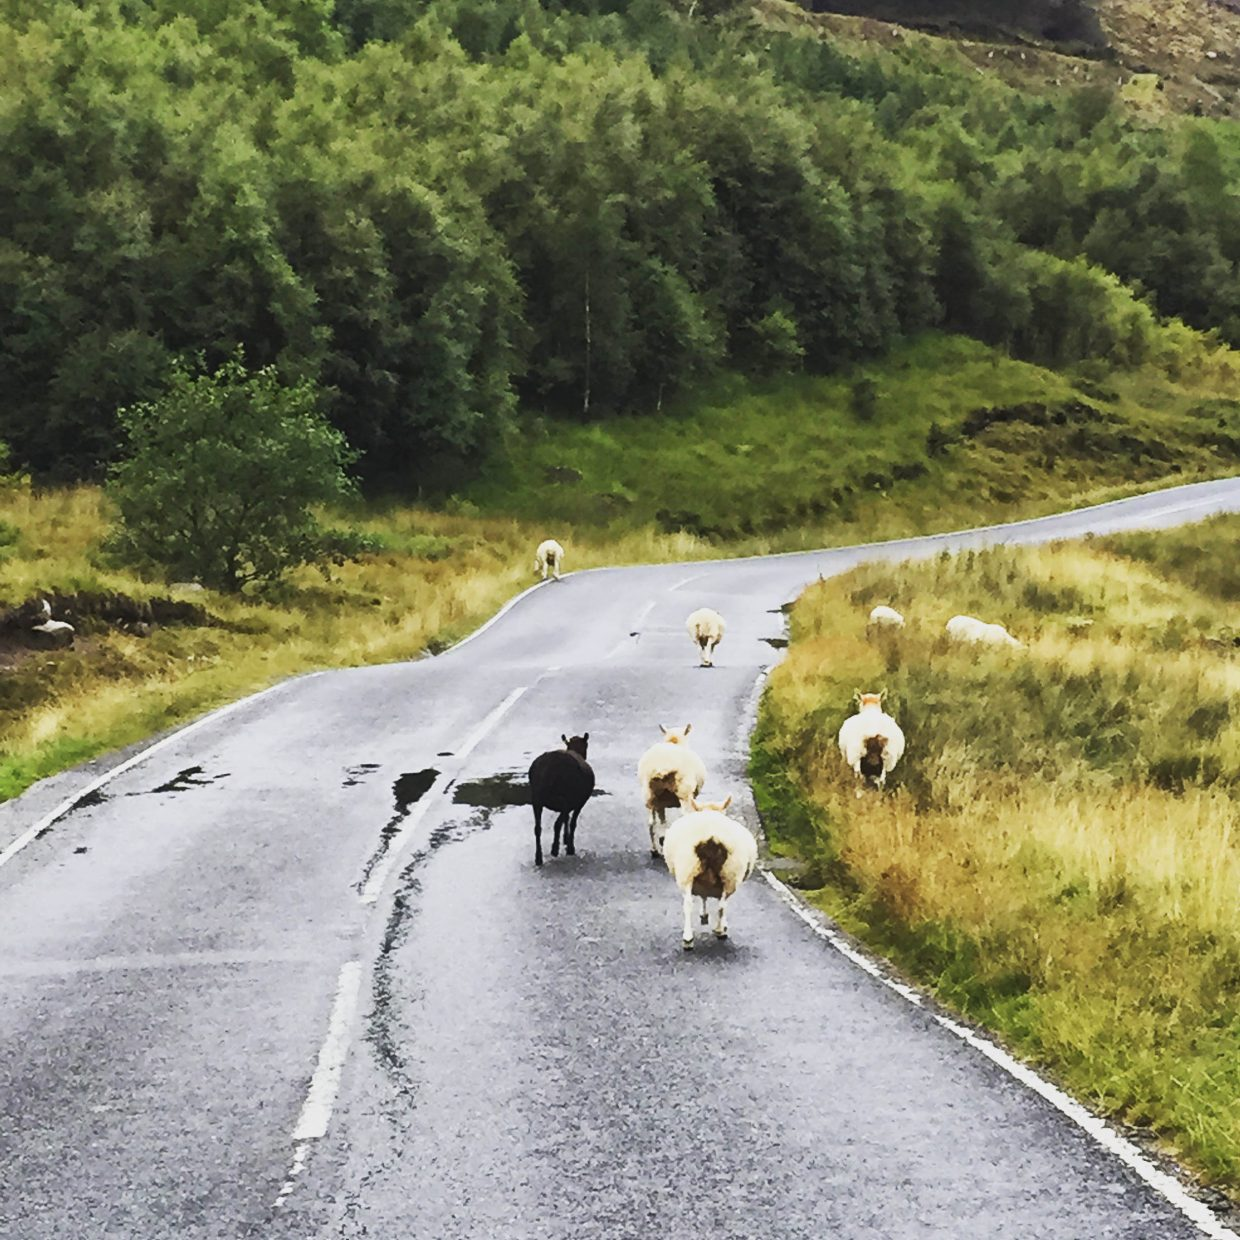 This photo depicts a typical Scottish scene in the Highlands.